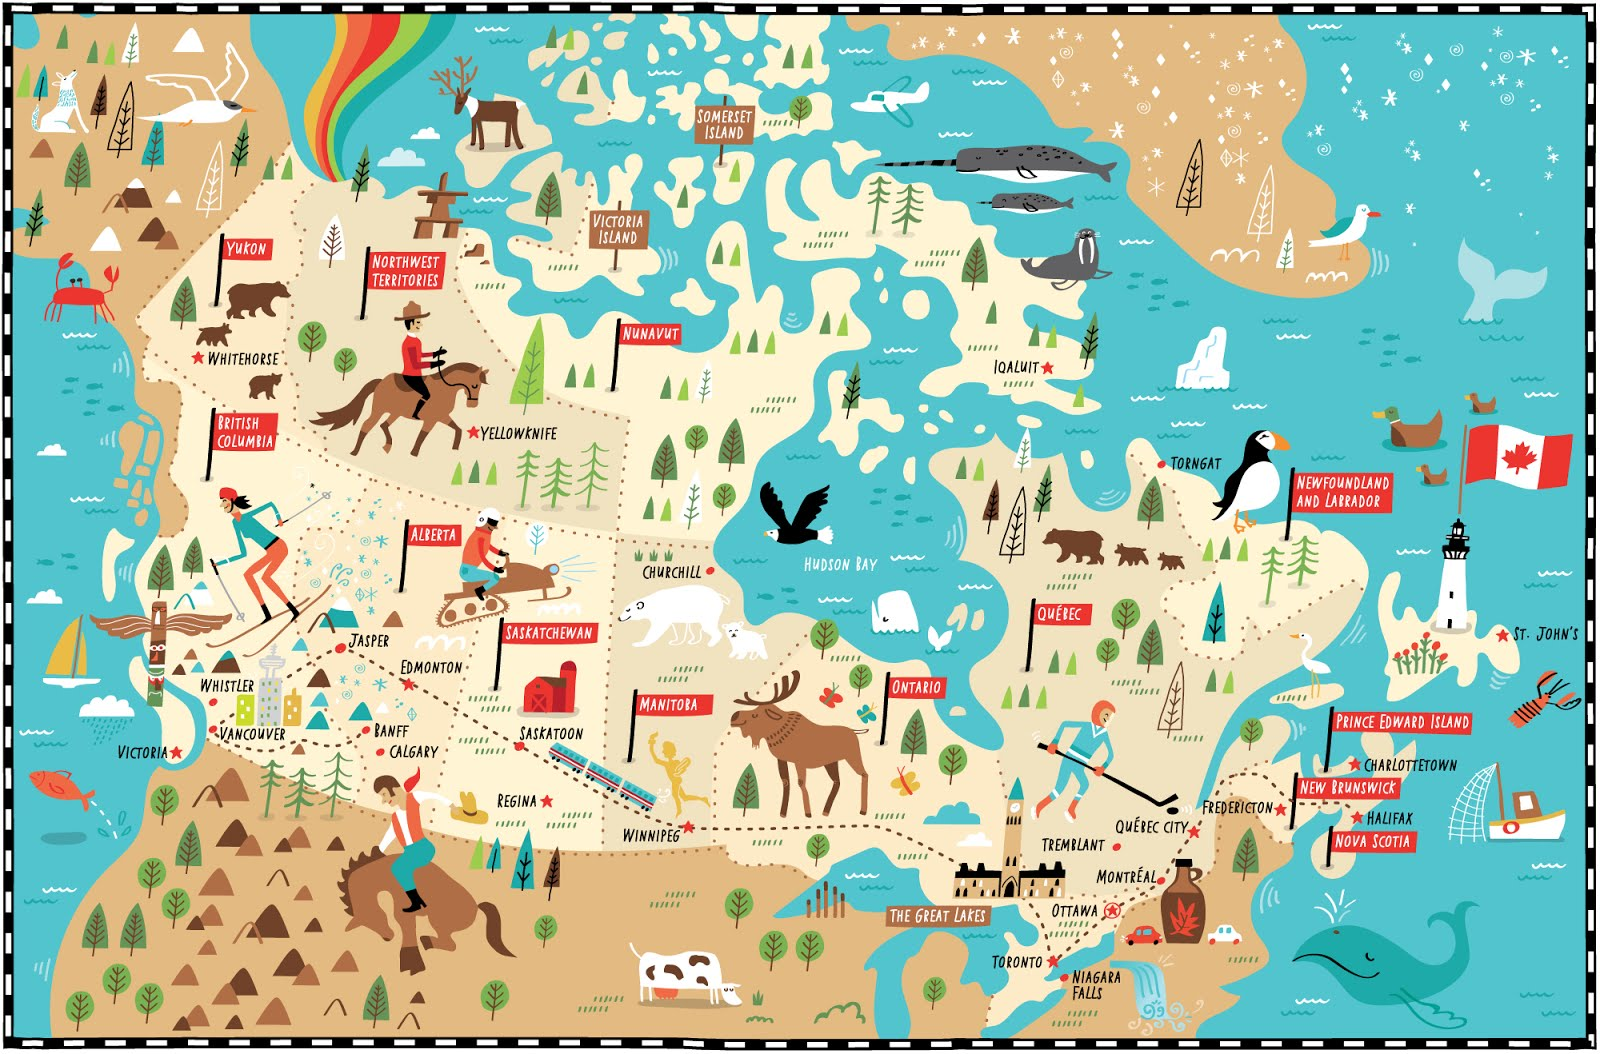 I Draw Maps: Illustrated Map of Canada for Telegraph UK by